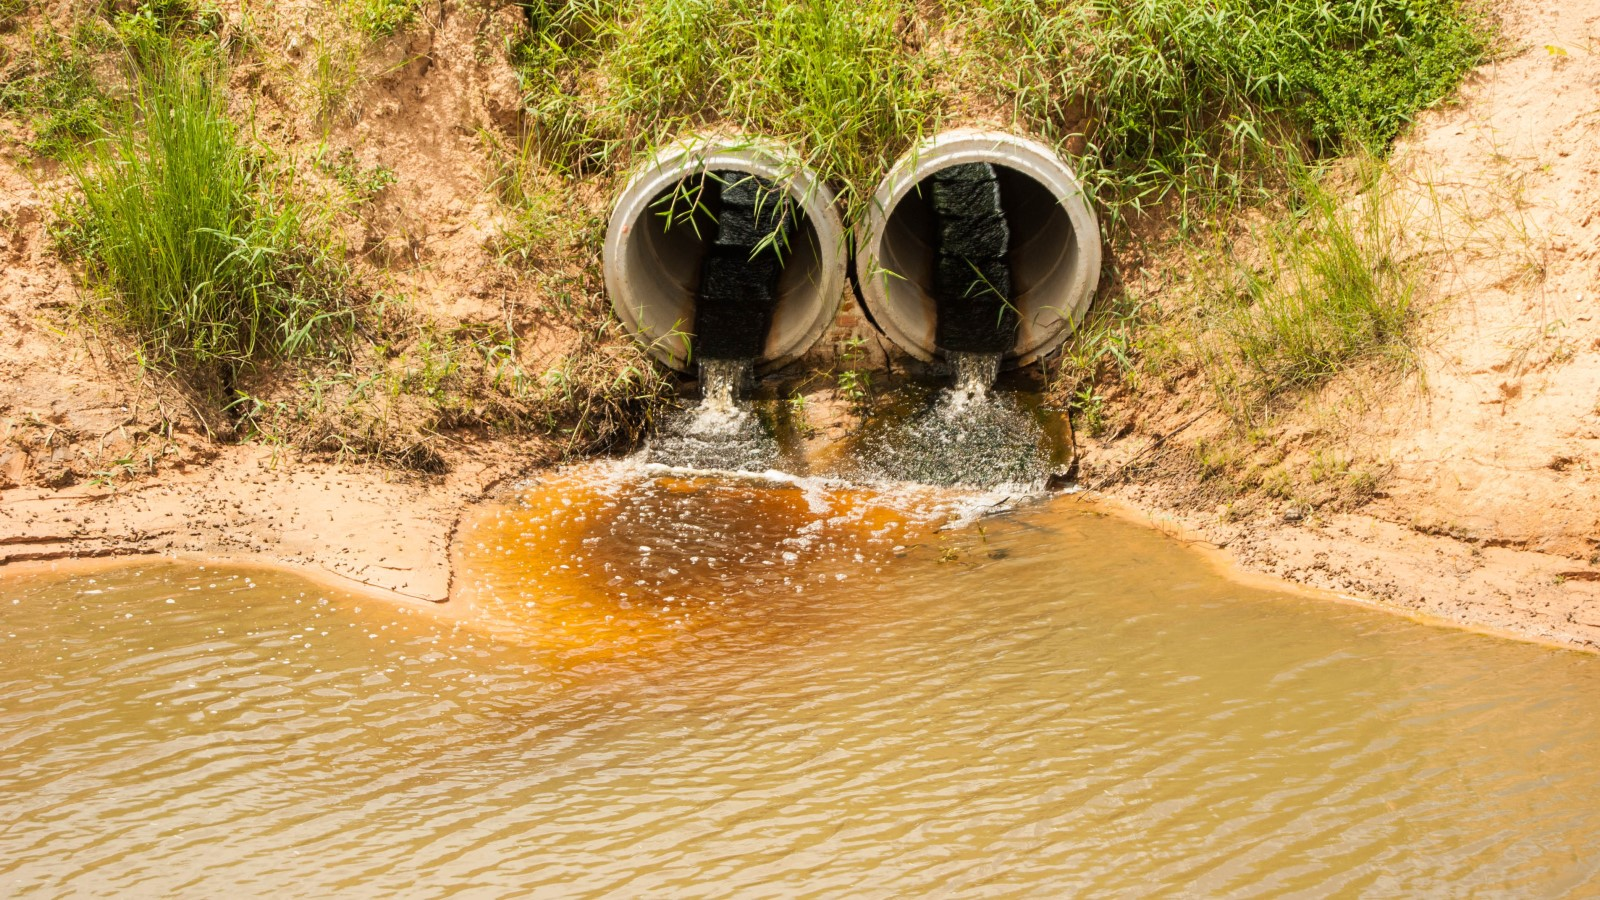 Israelis Develop System For Cleaning Industrial Pollution